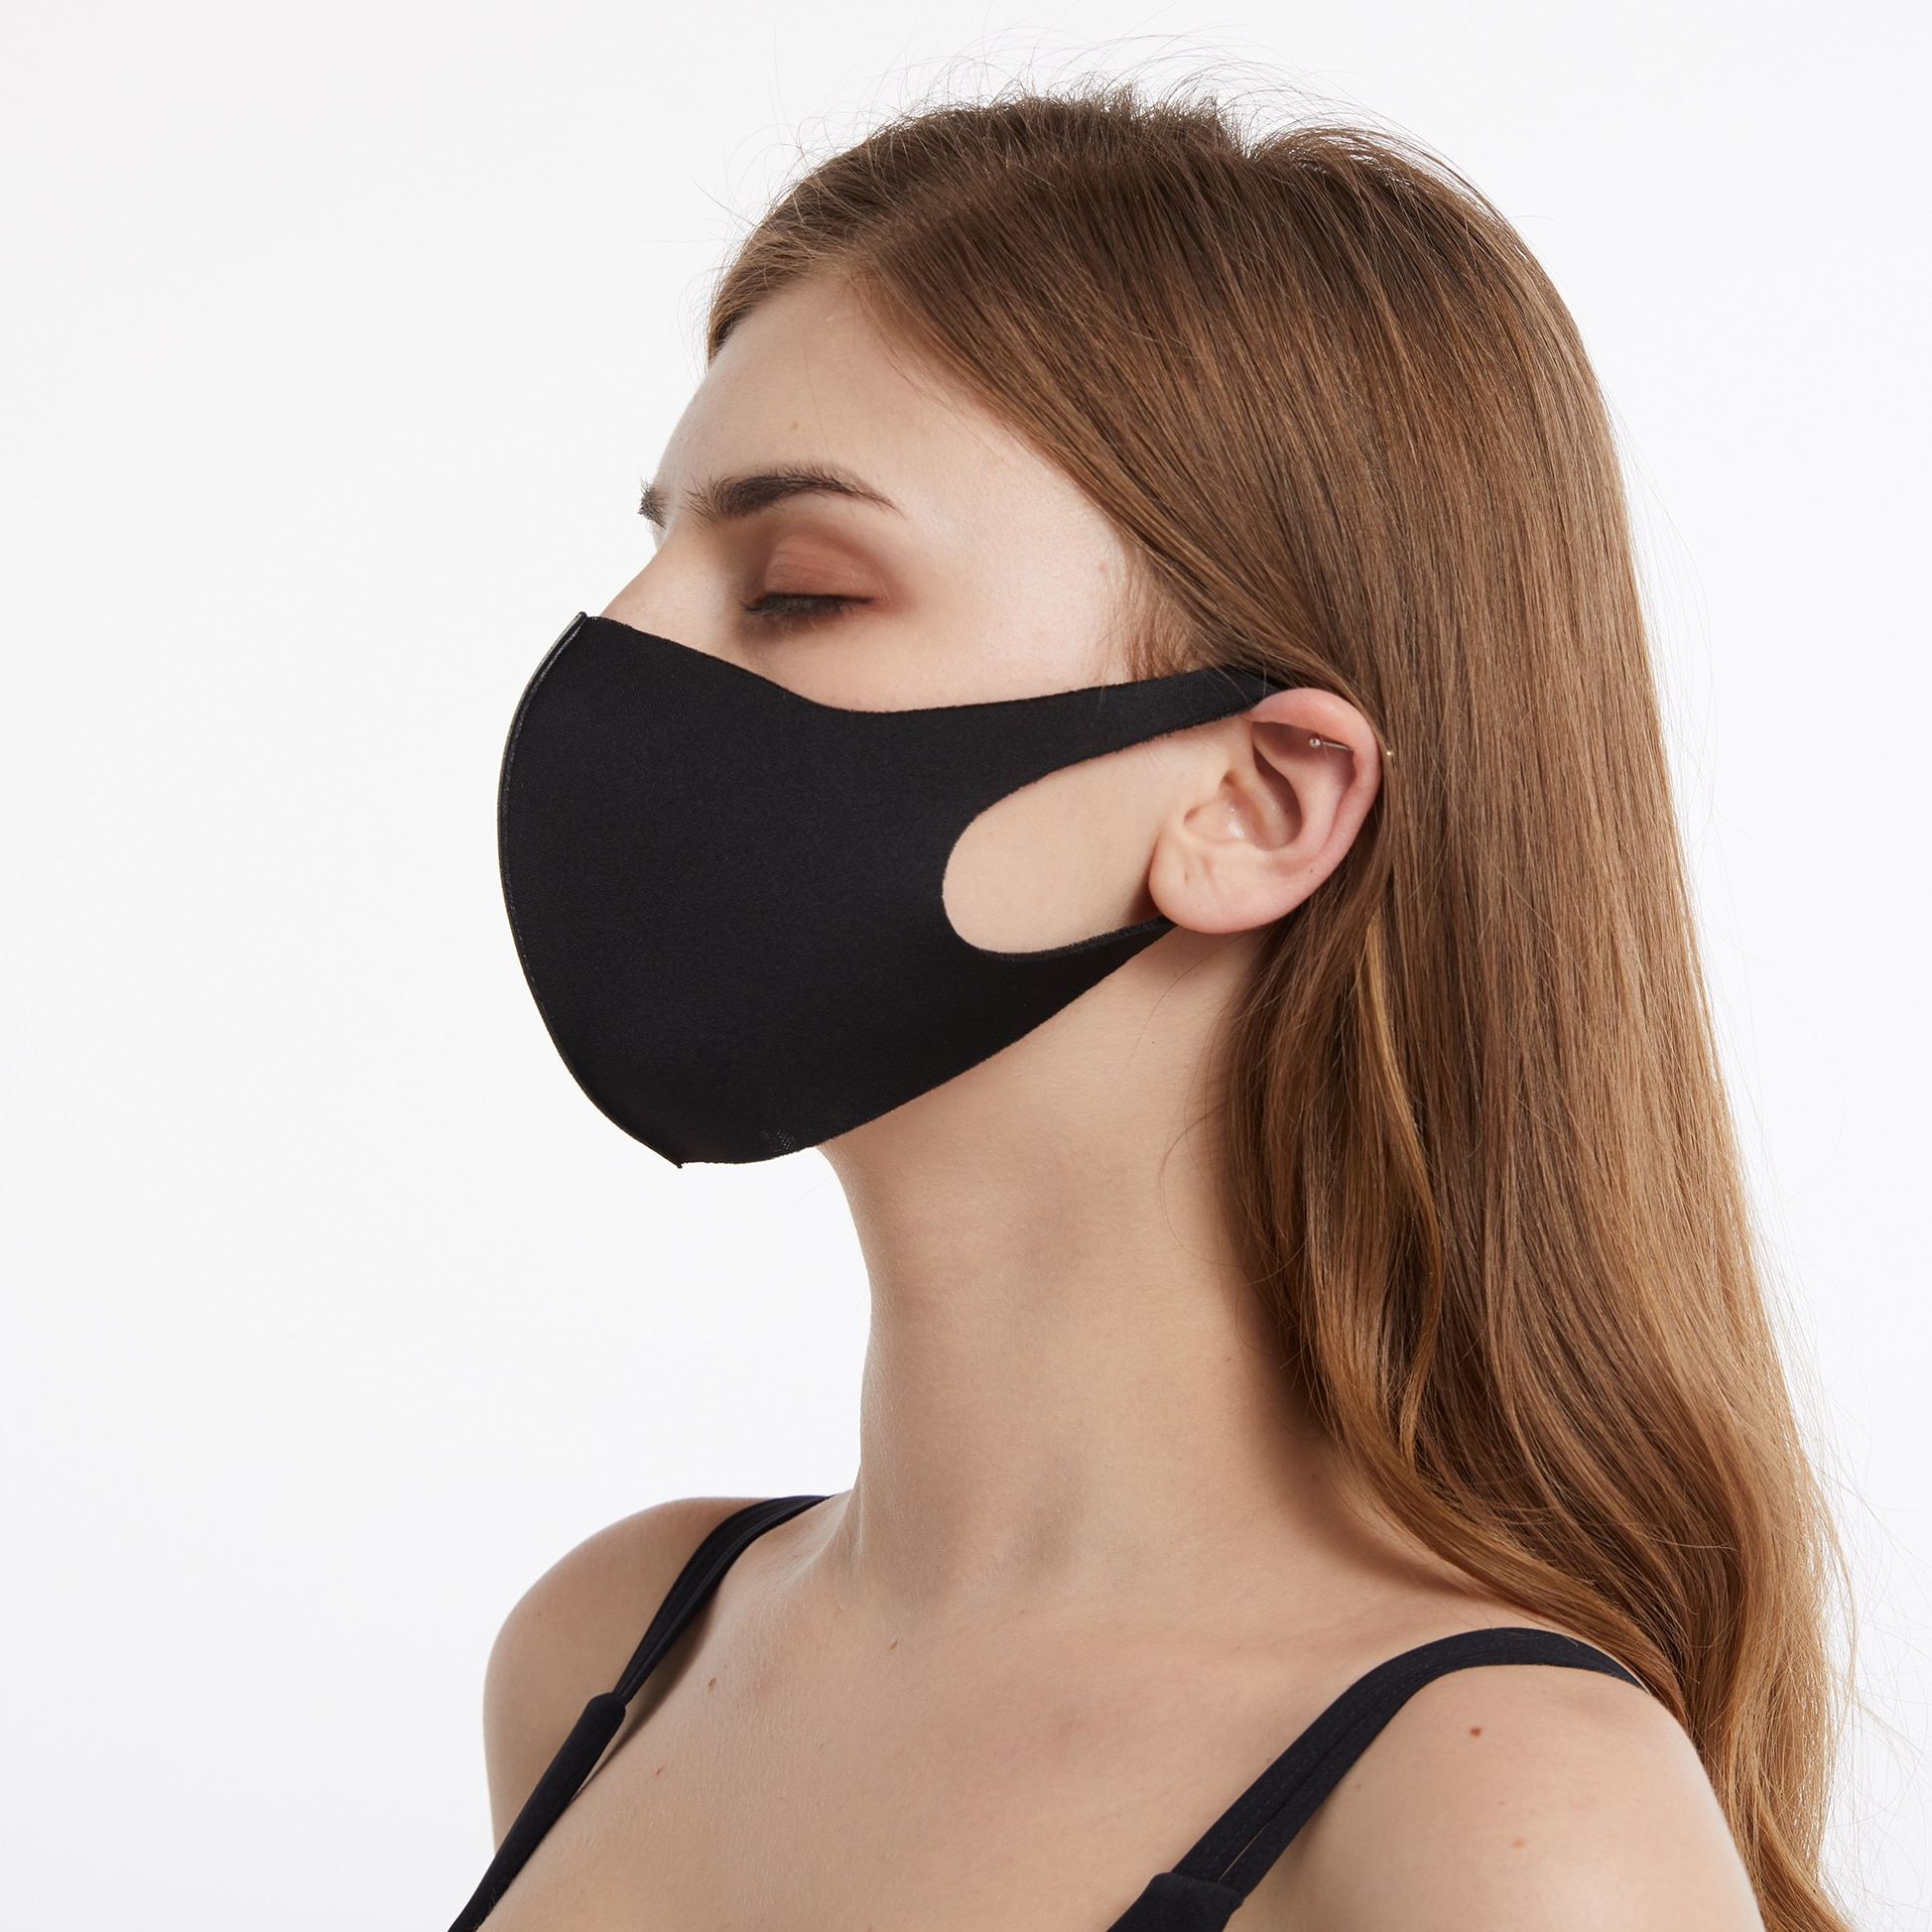 Washable Dust Proof Black Face Mask Breathable Super Soft Fashion Design Windproof Mouth-muffle Reusable Face Masks 3